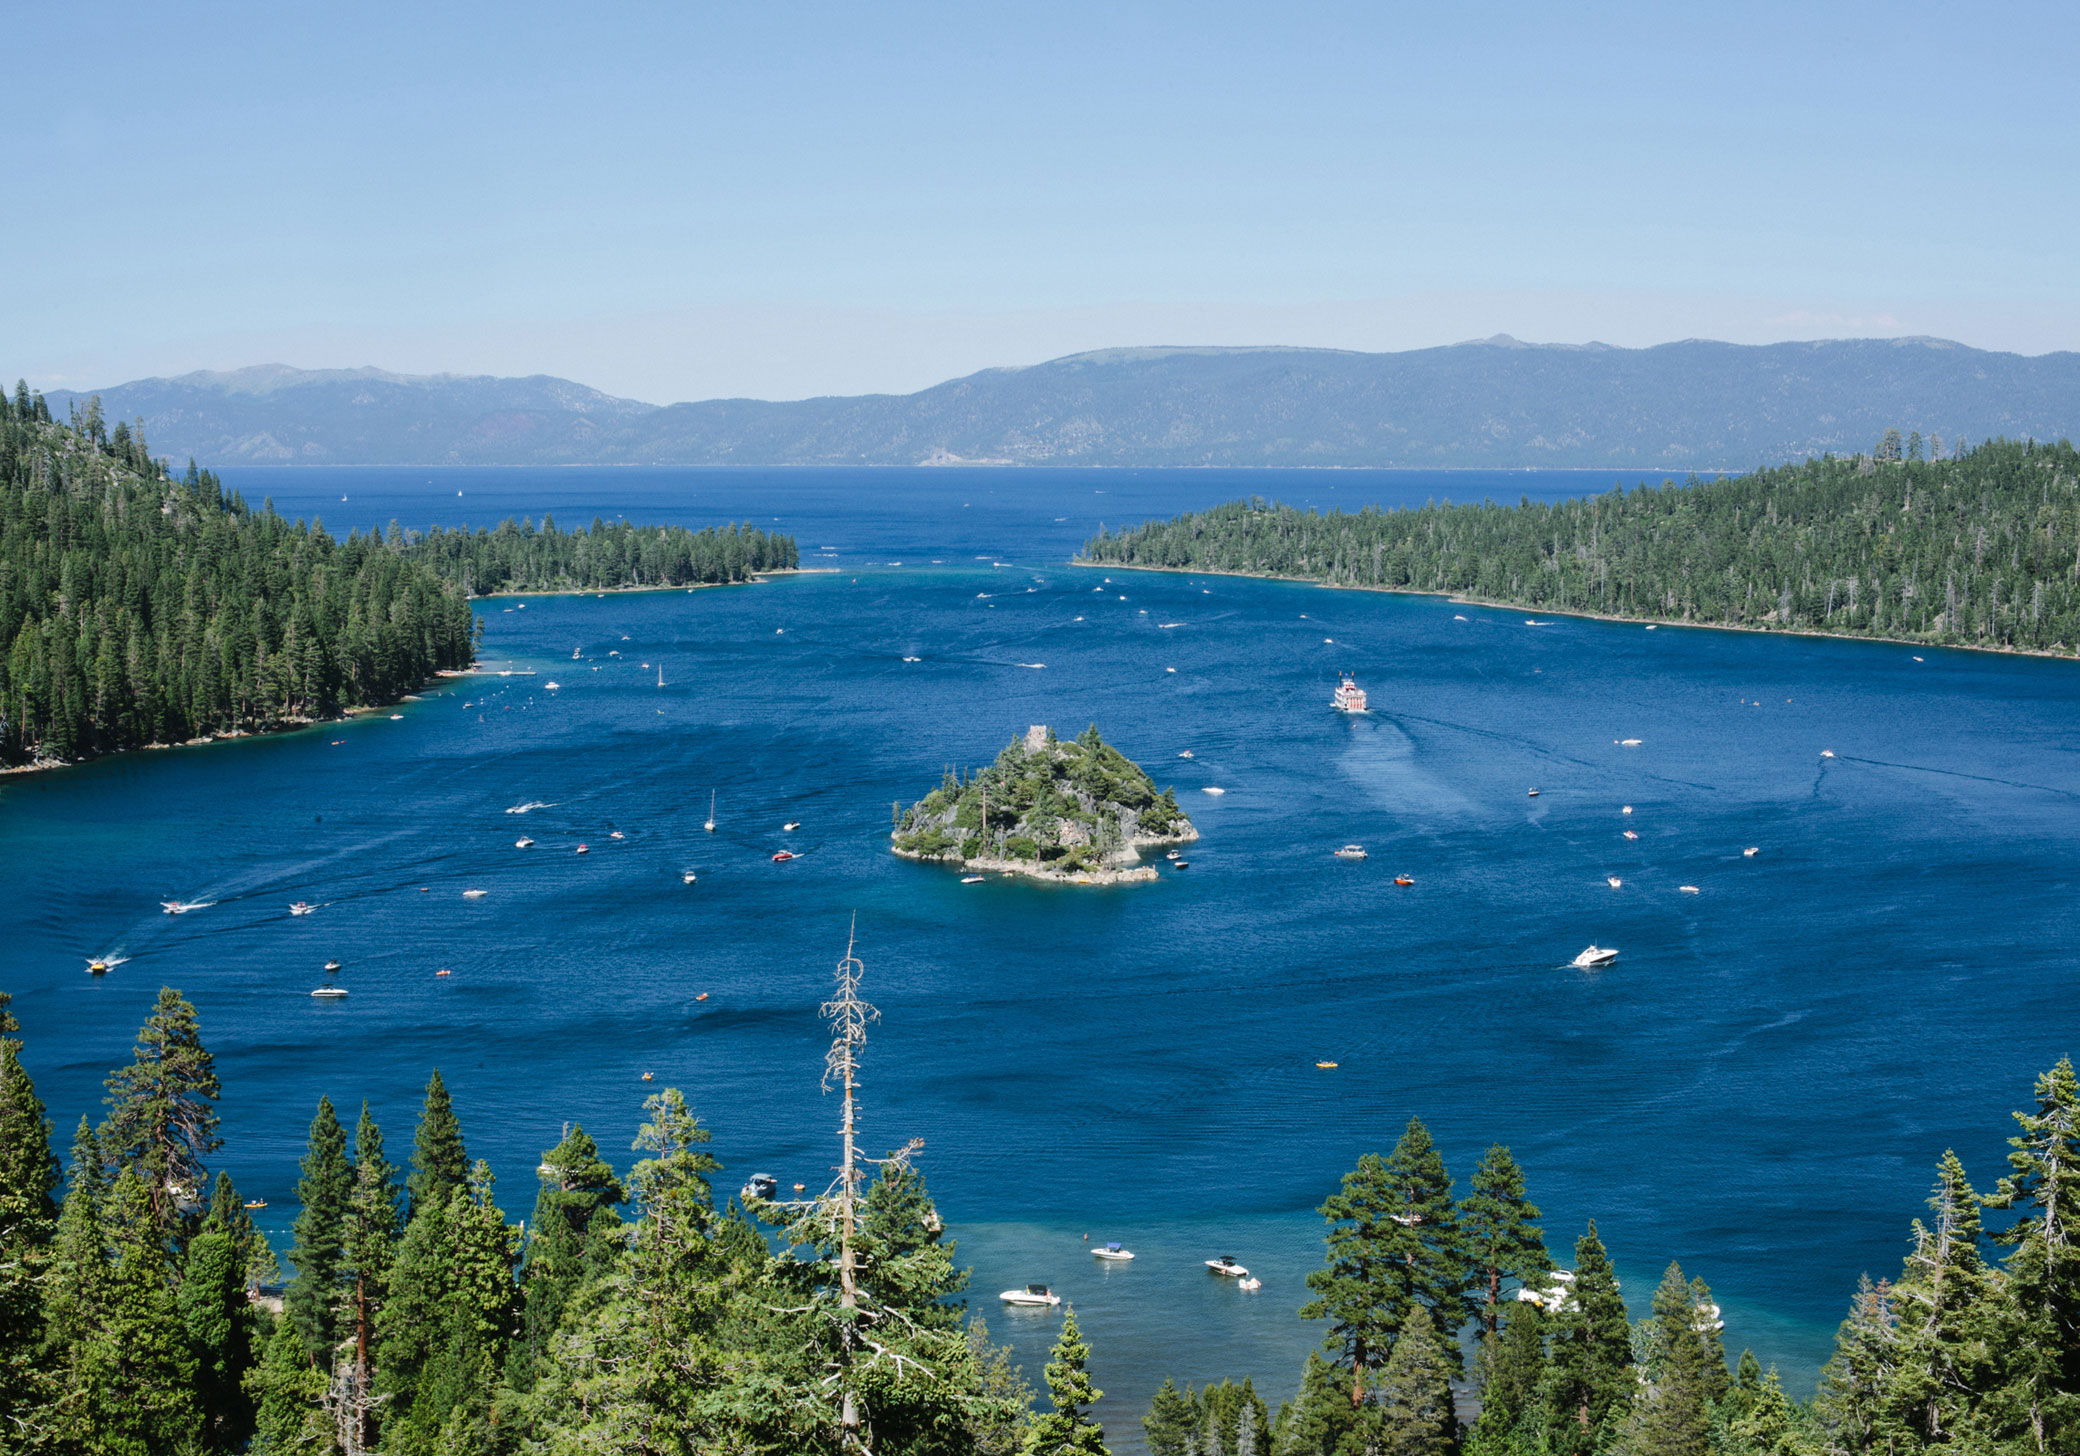 south lake tahoe christian personals In july 2011, a woman named marie hanson, from south lake tahoe, california went missing in skookum meadow, washington state while attending the 2011 rainbow gathering at gifford pinchot national forest.